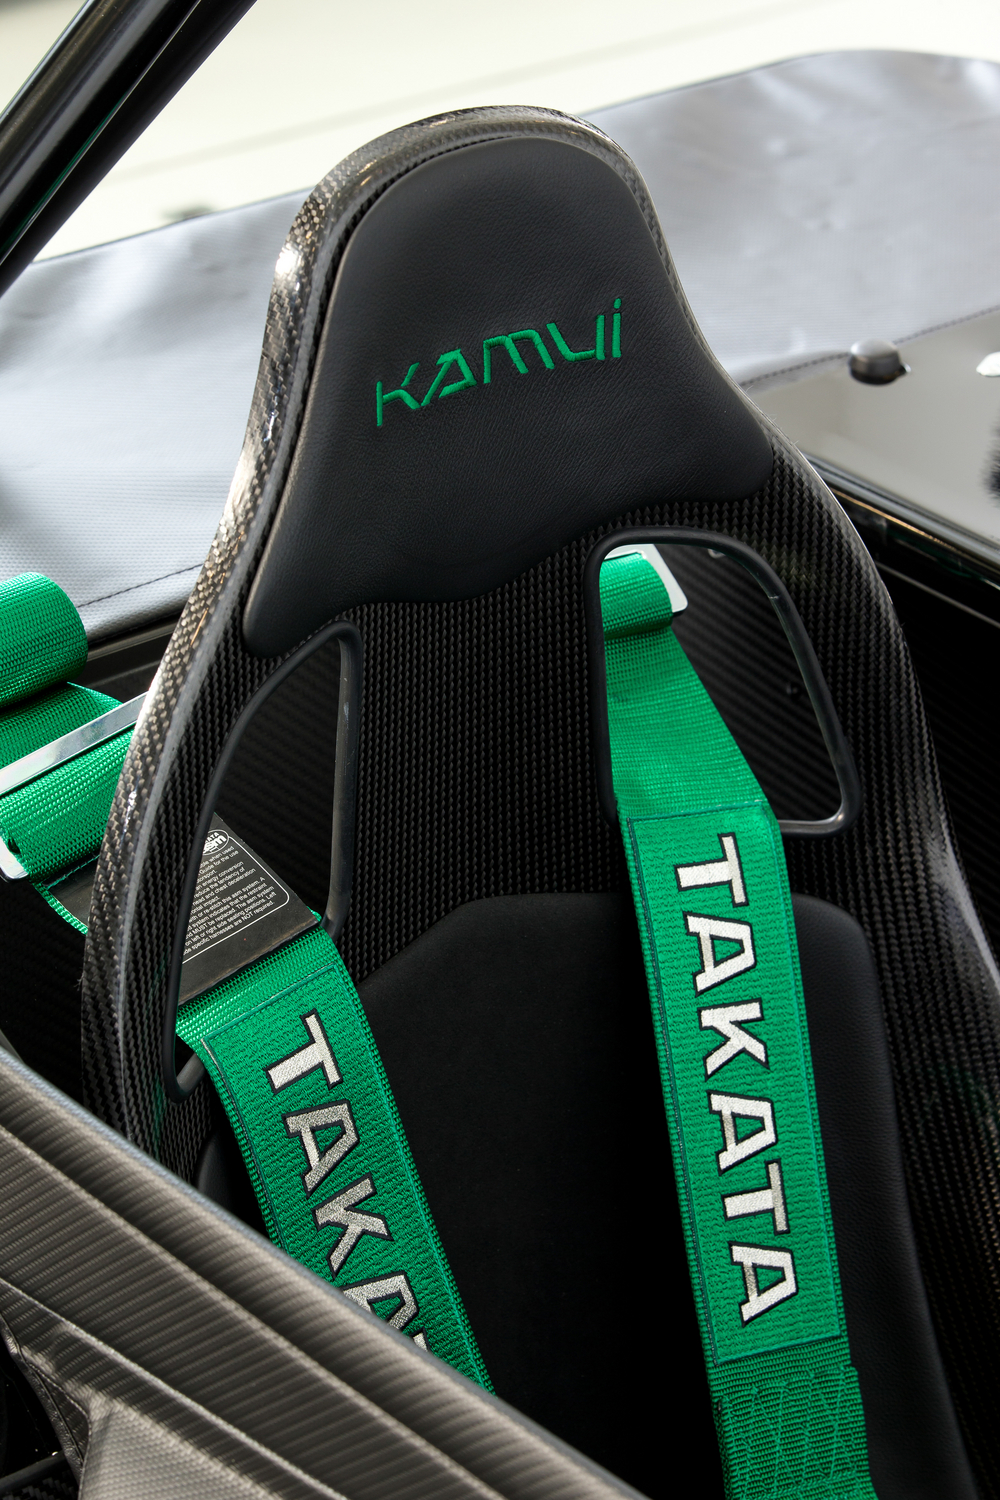 Detail from the special edition sport seat